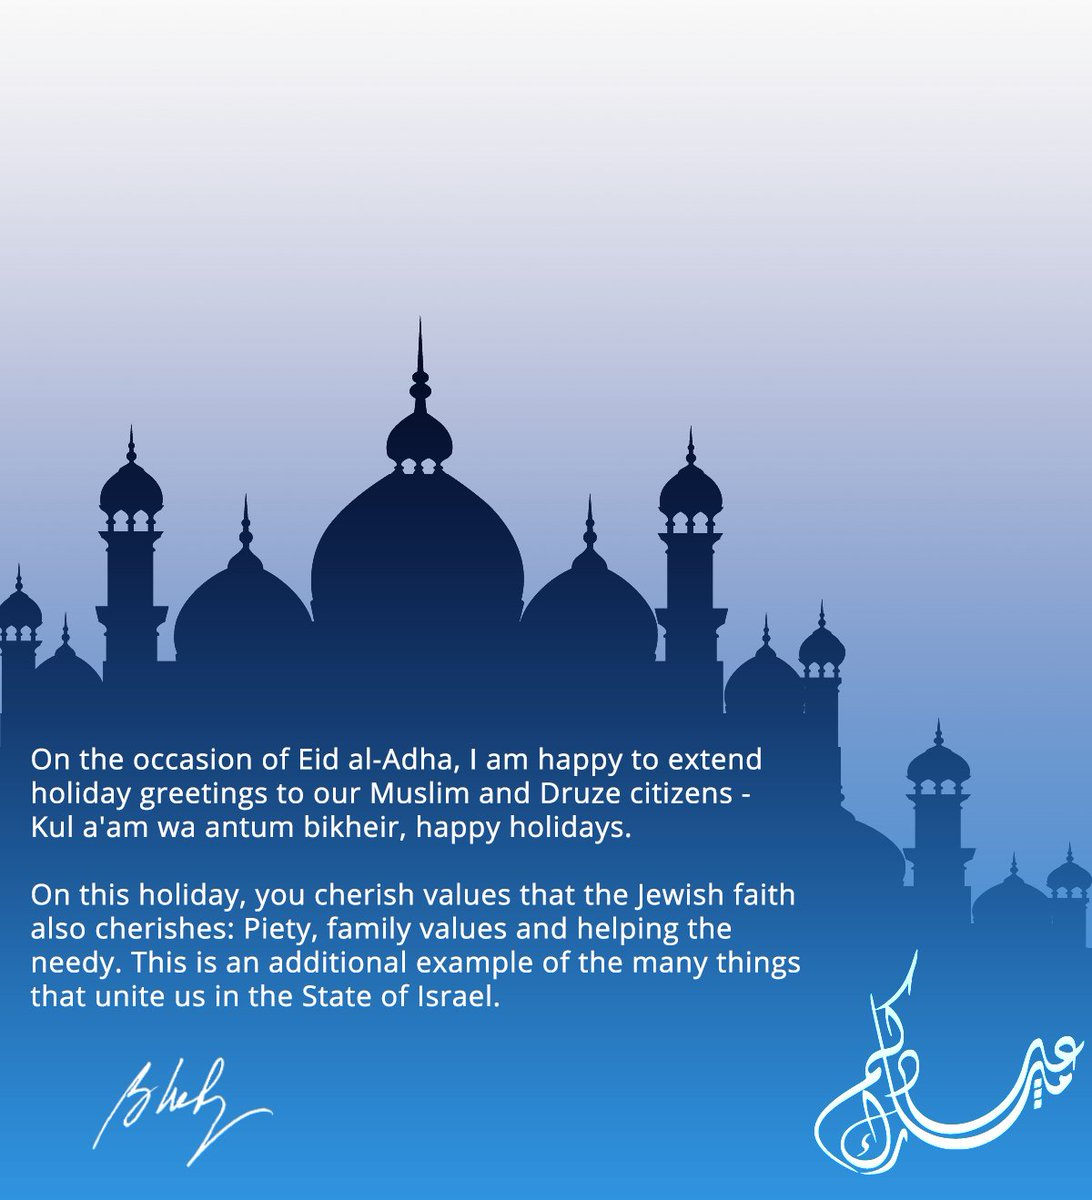 Prime Minister Netanyahu Extends Eid Al Adha Greetings To Israels